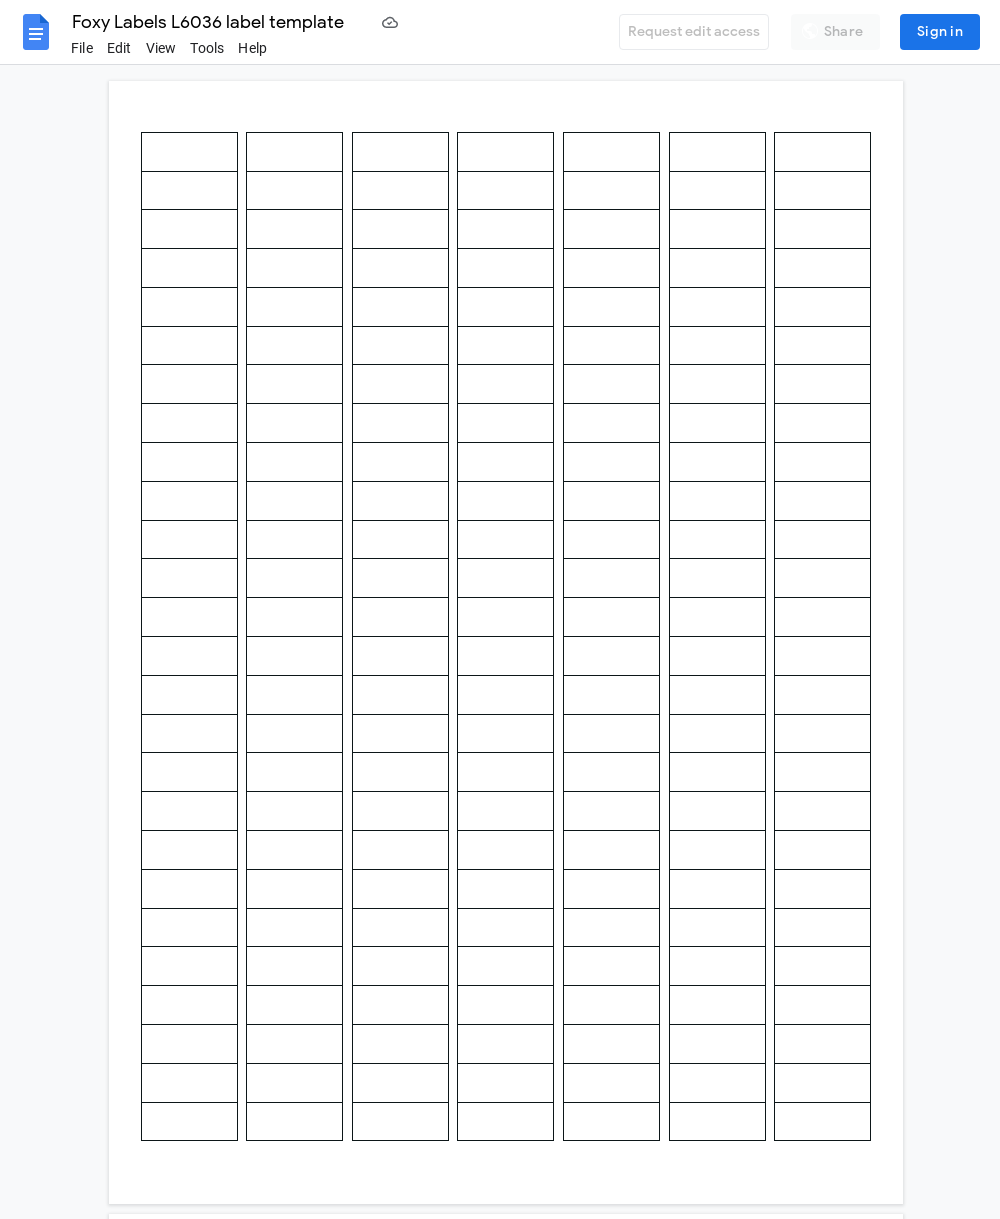 Avery L6036 Label Template